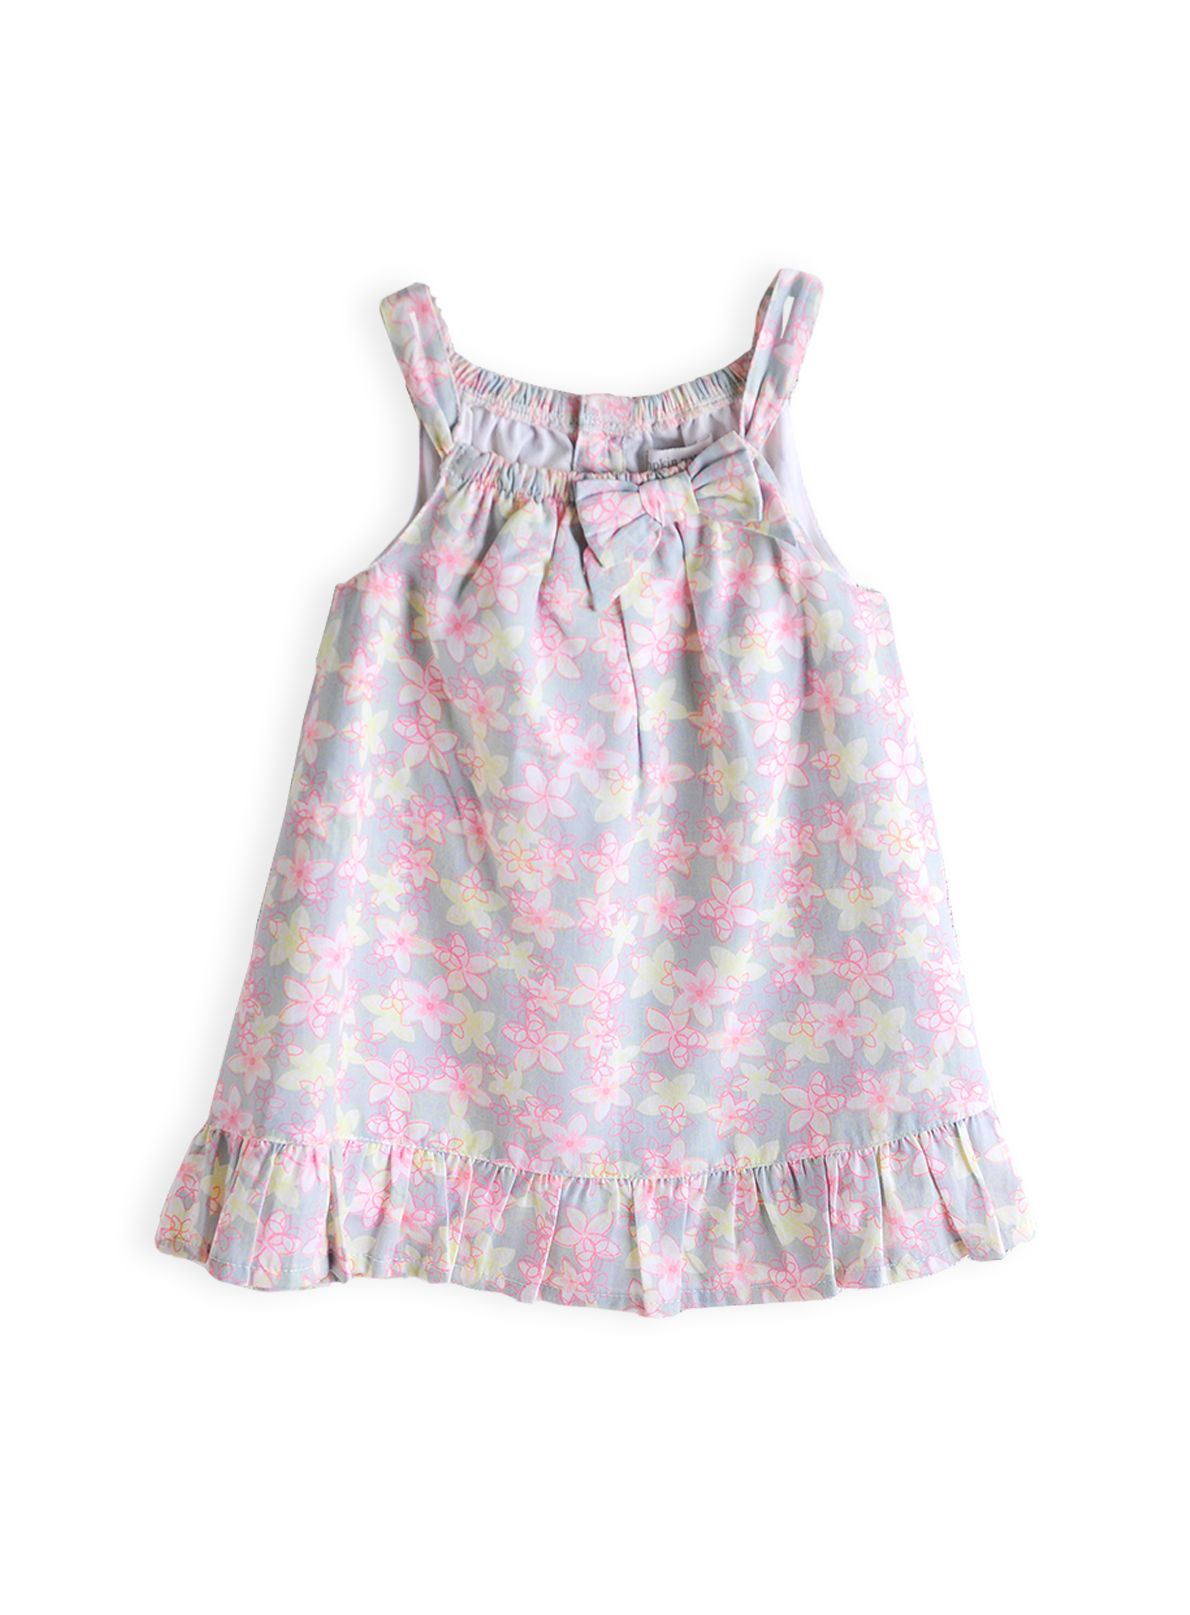 Girls frangapani sketch dress